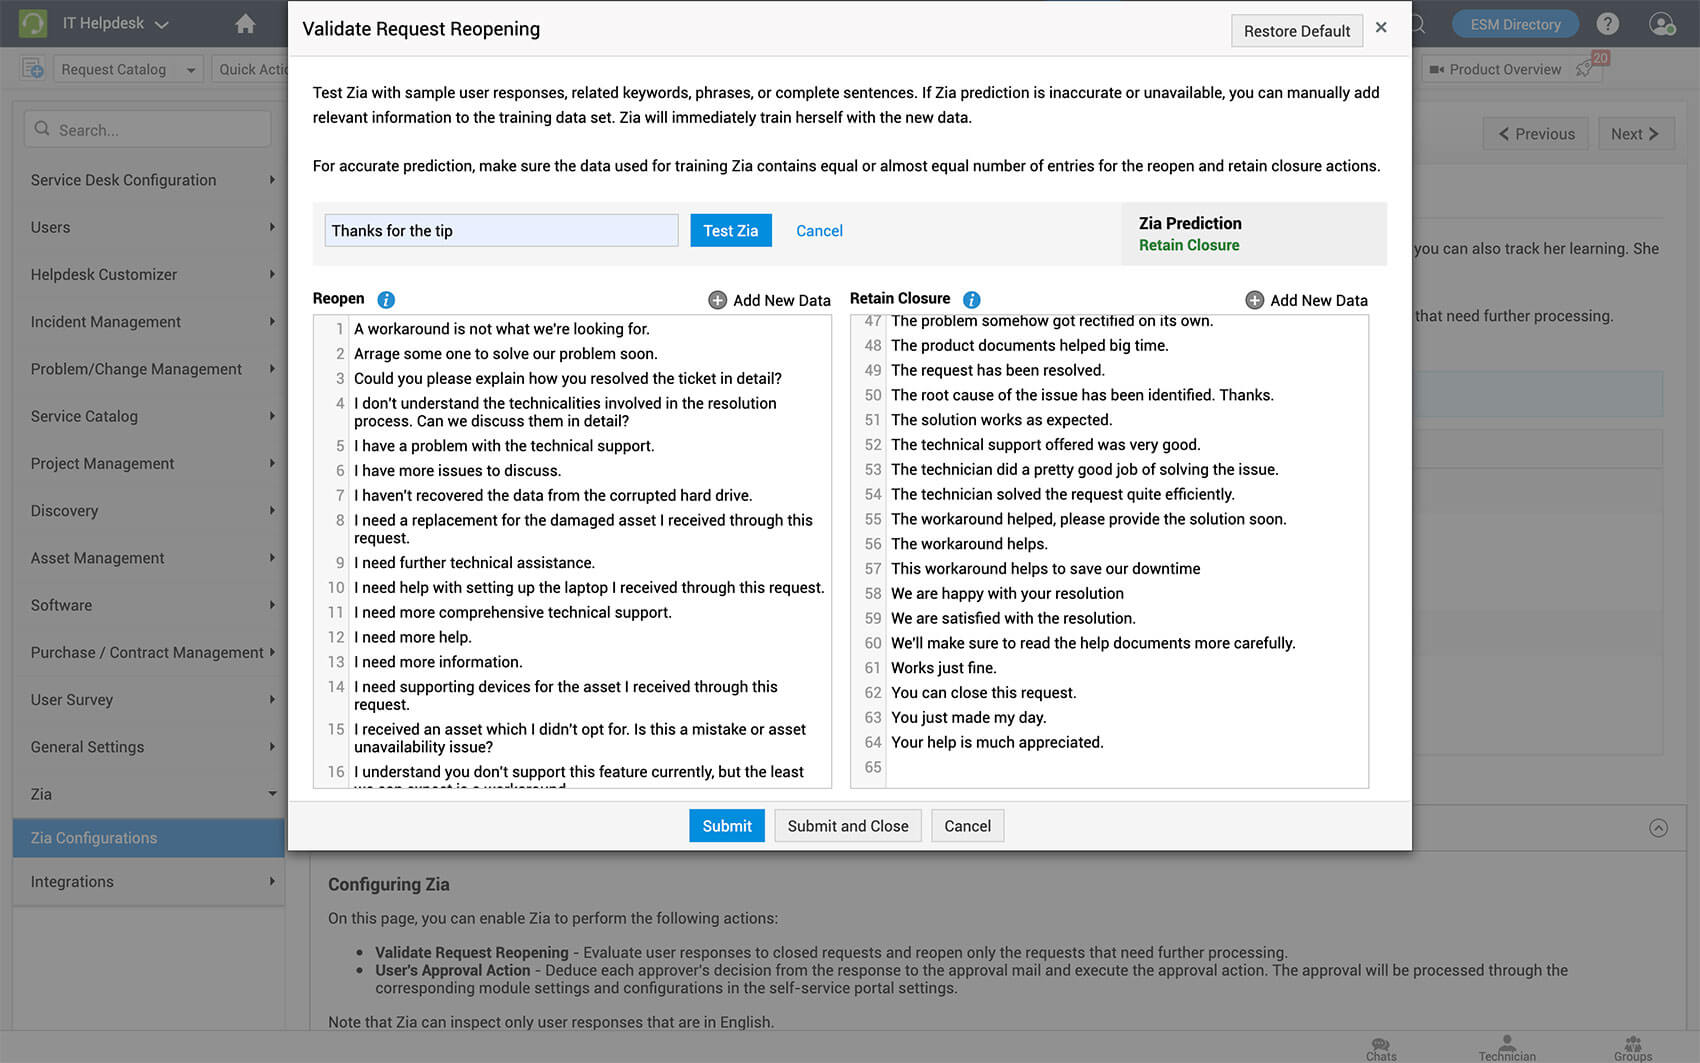 Update ServiceDesk Plus latest version - Avoid reopening tickets